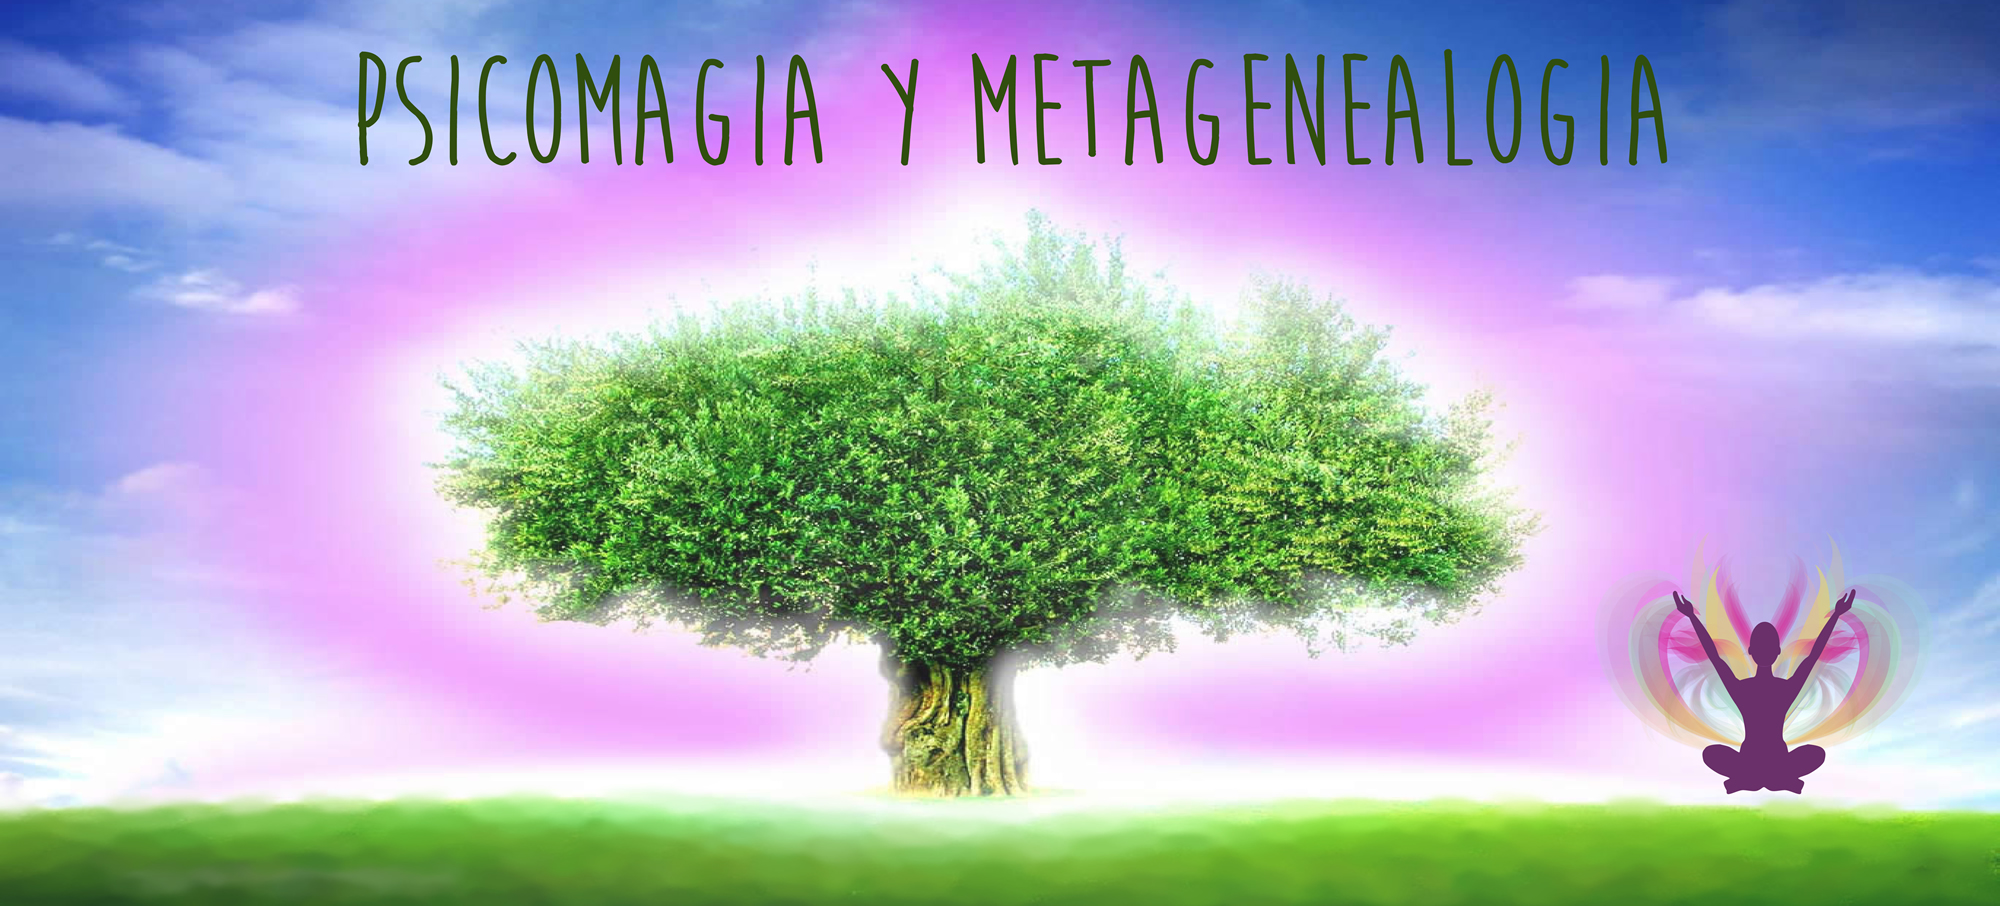 La metagenealogia